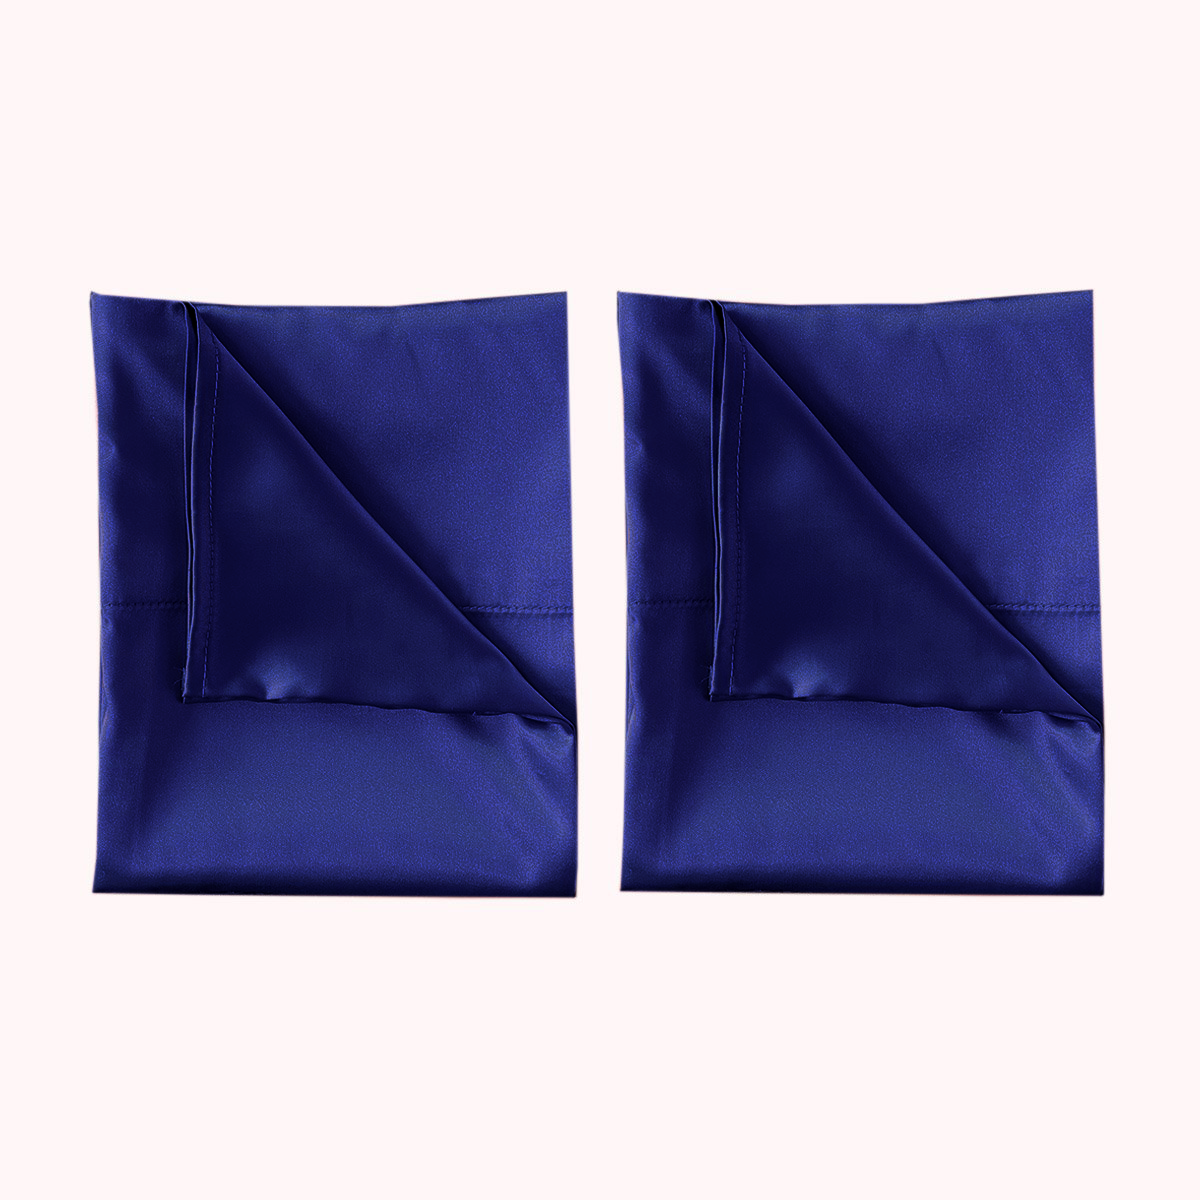 RISE Essential Satin Pillowcase - Navy Blue (2 Pack)